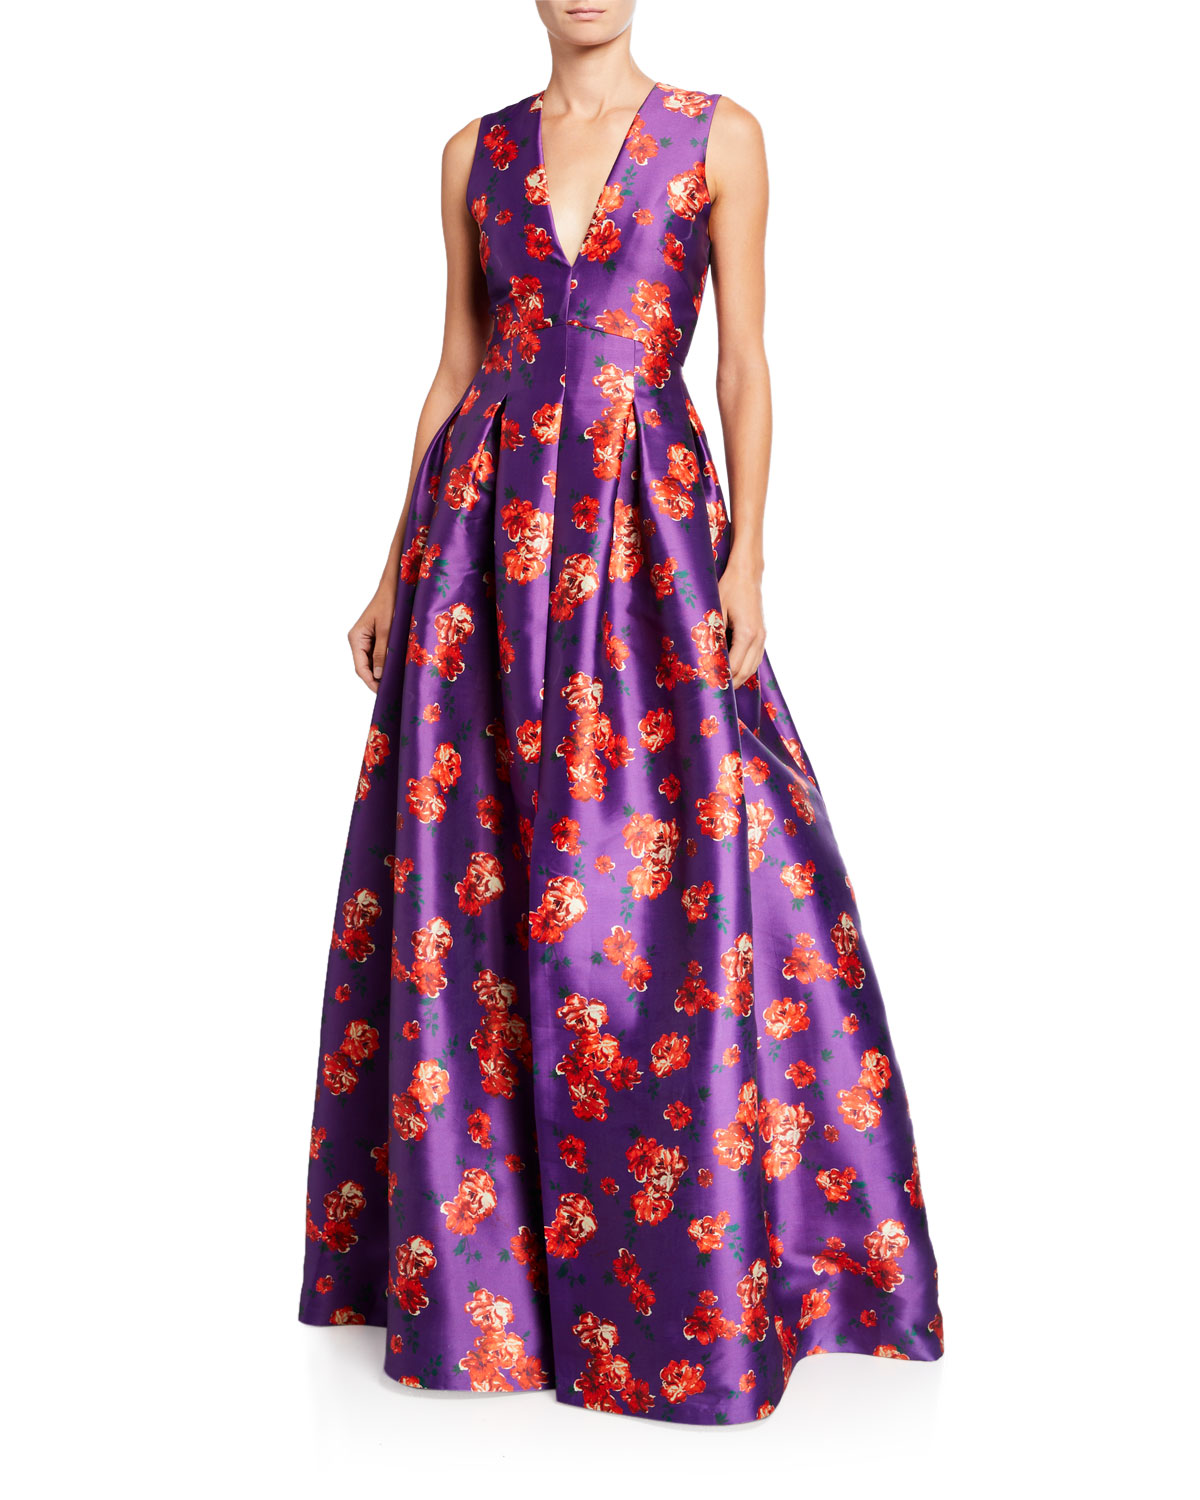 Sachin & Babi Tops BROOK FLORAL V-NECK SLEEVELESS TWILL BALL GOWN